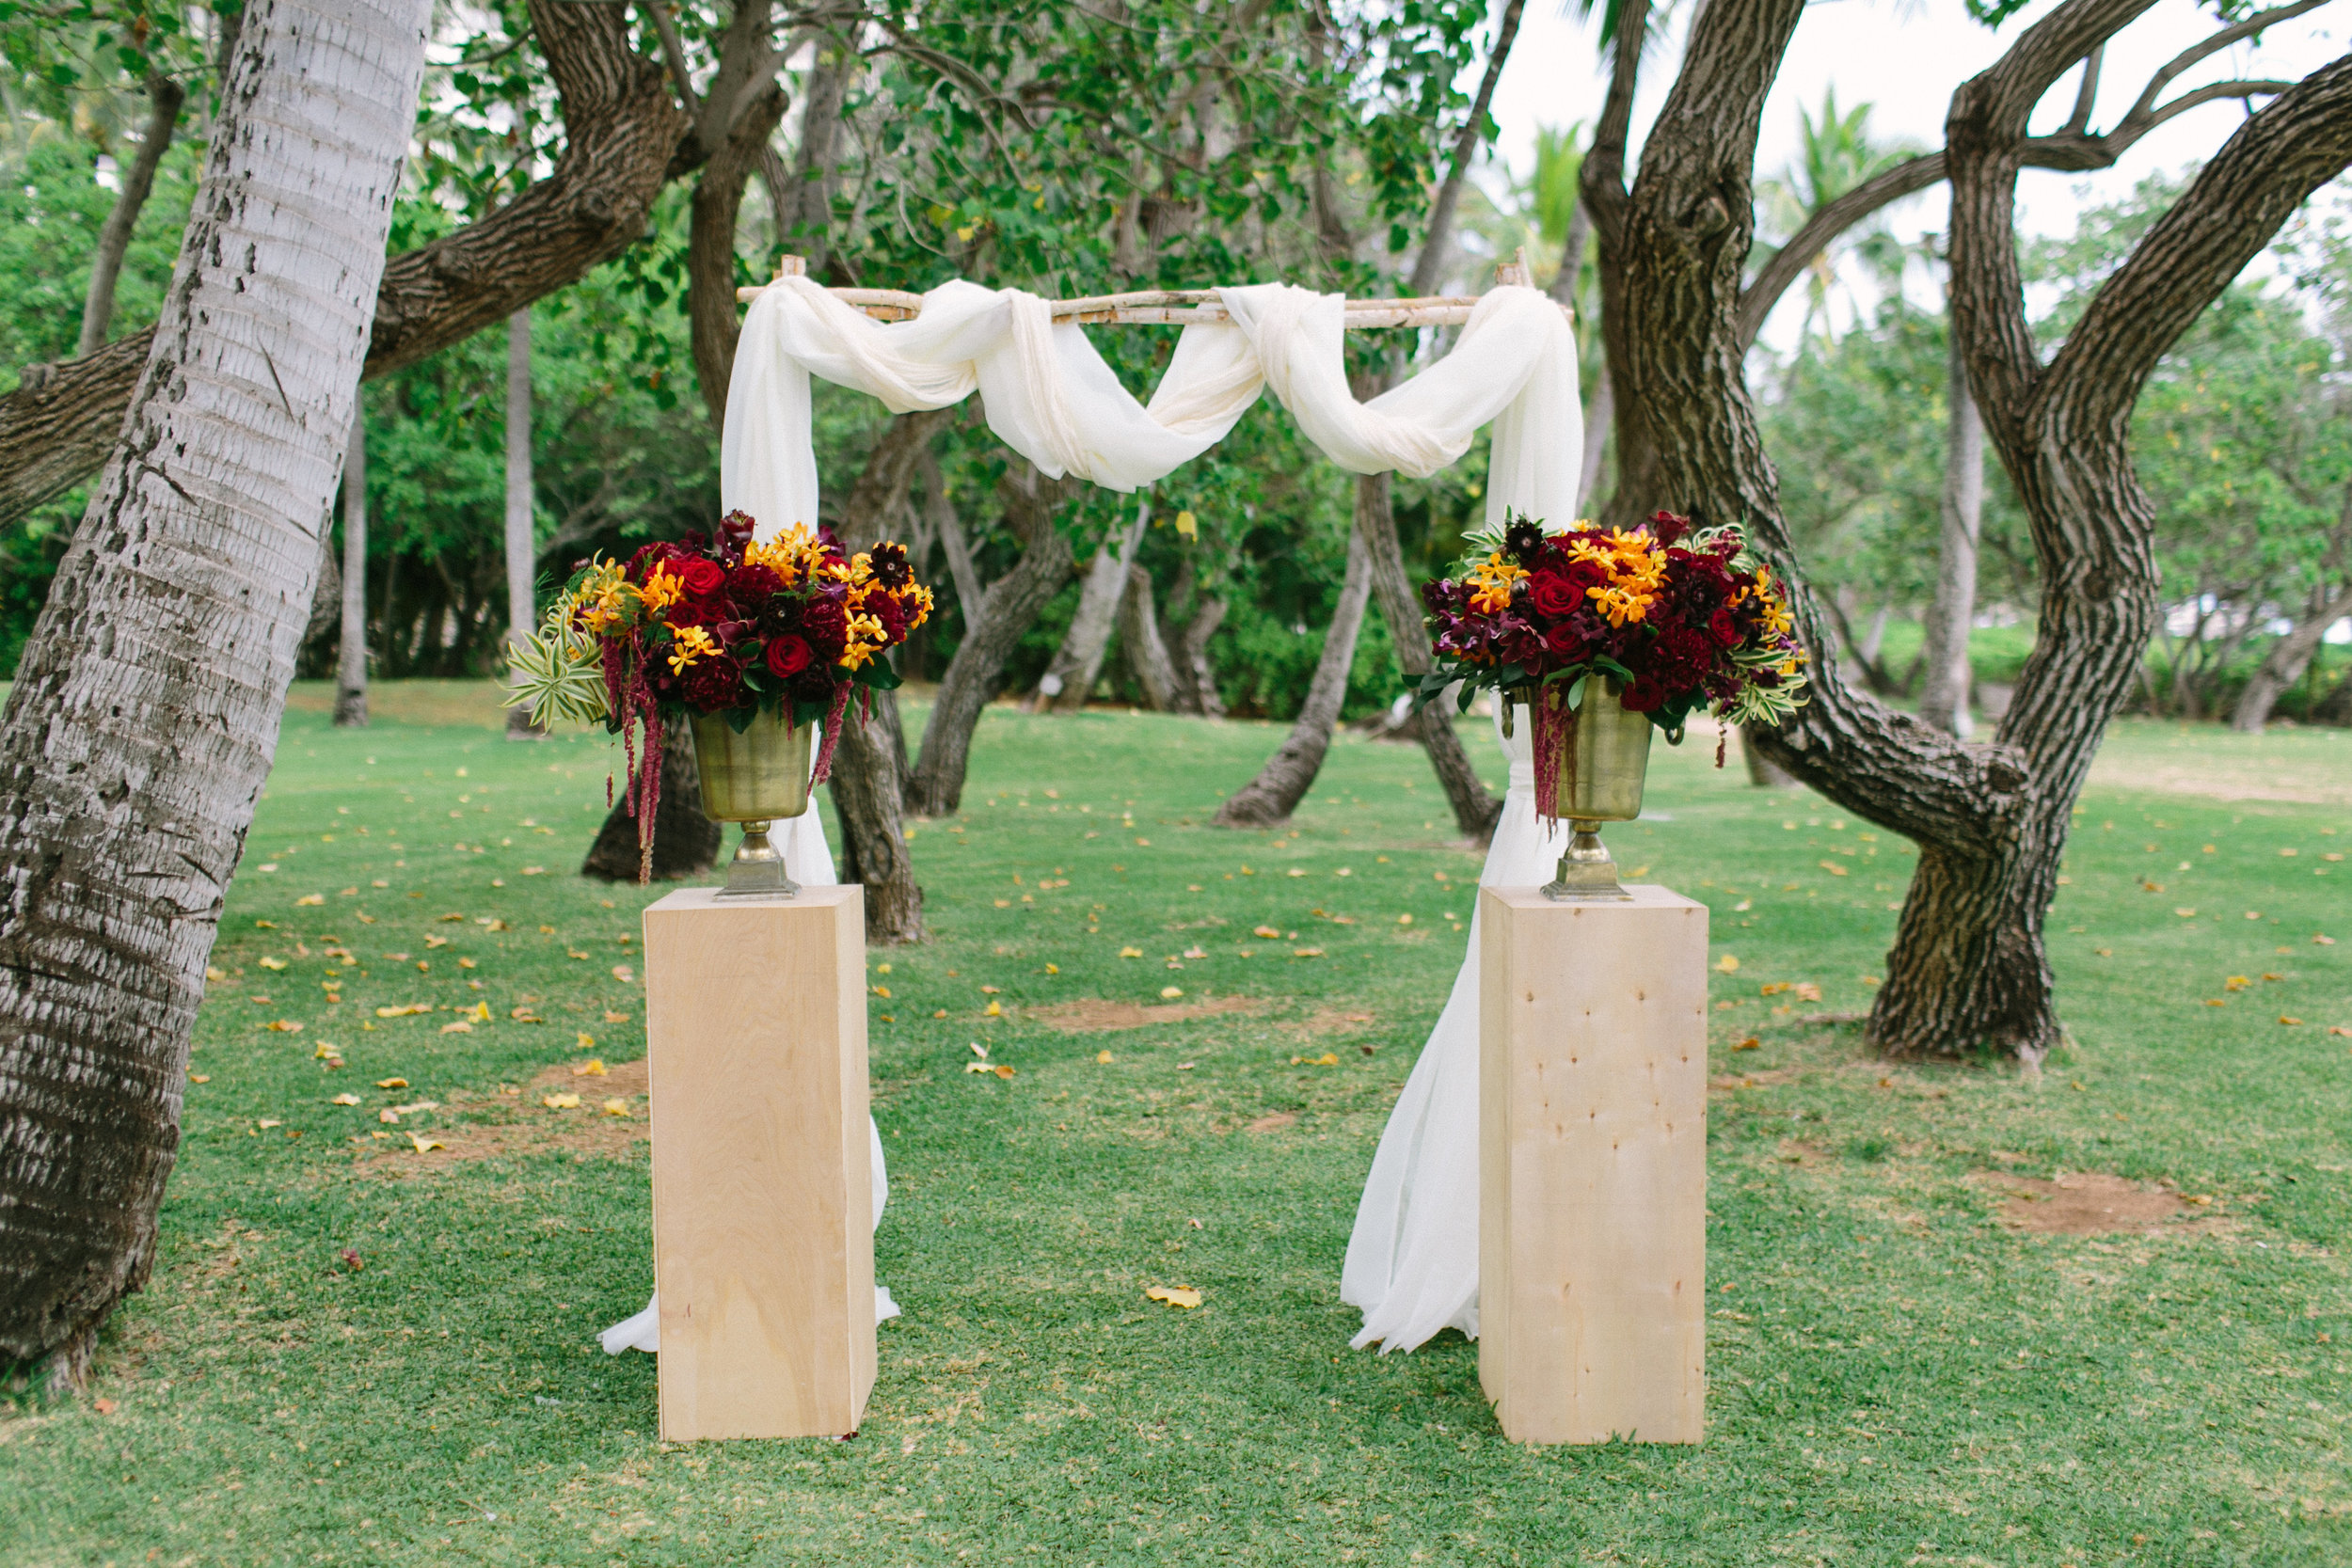 ceremony florals by Passion roots | Photo by ARIAStudios | Oahu, Hawaii